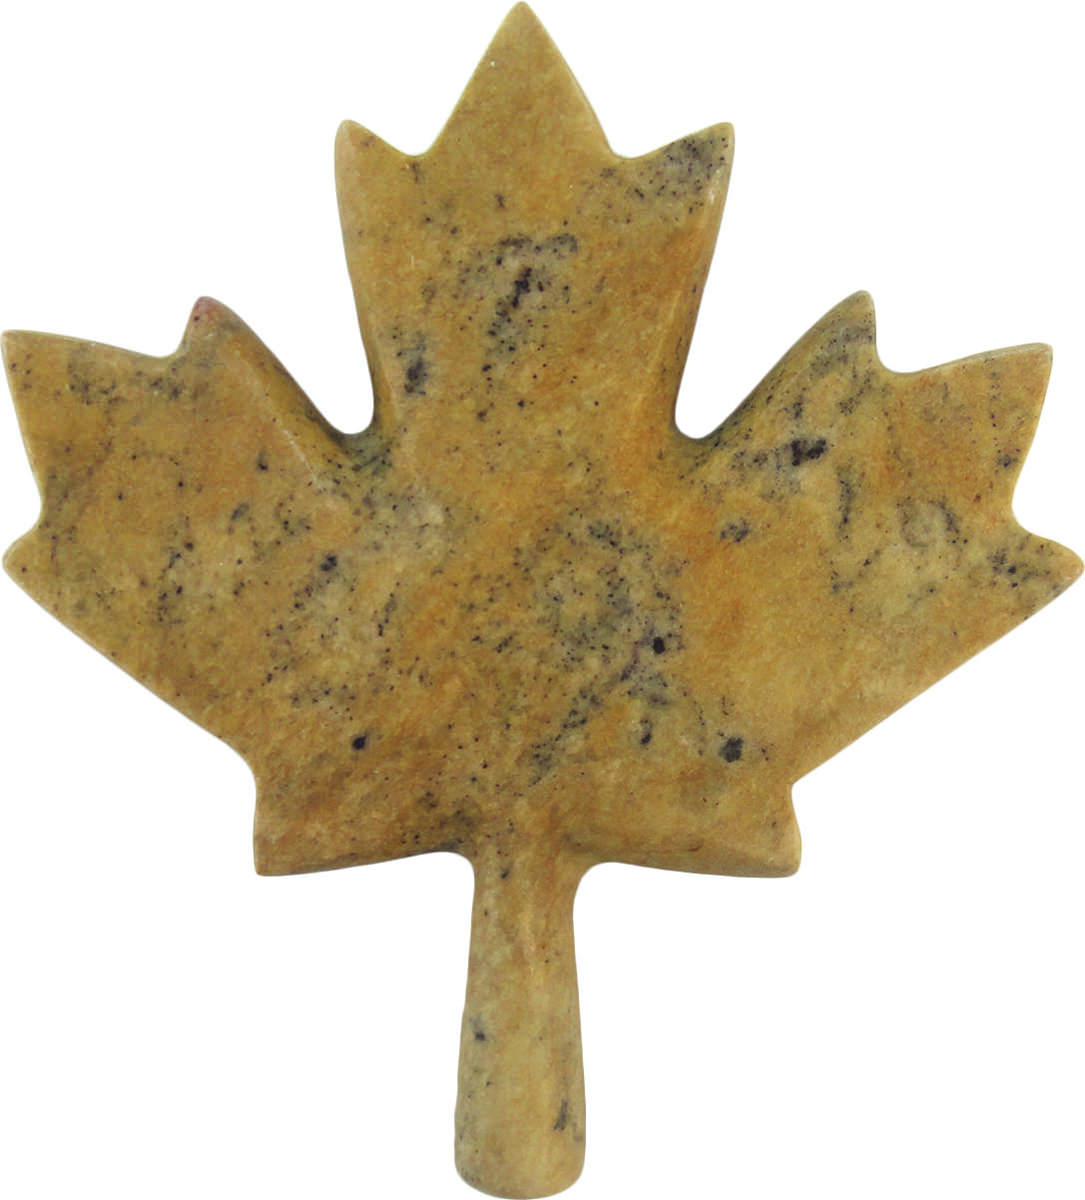 Soapstone Maple Leaf Canada Sculpture Carving Kit